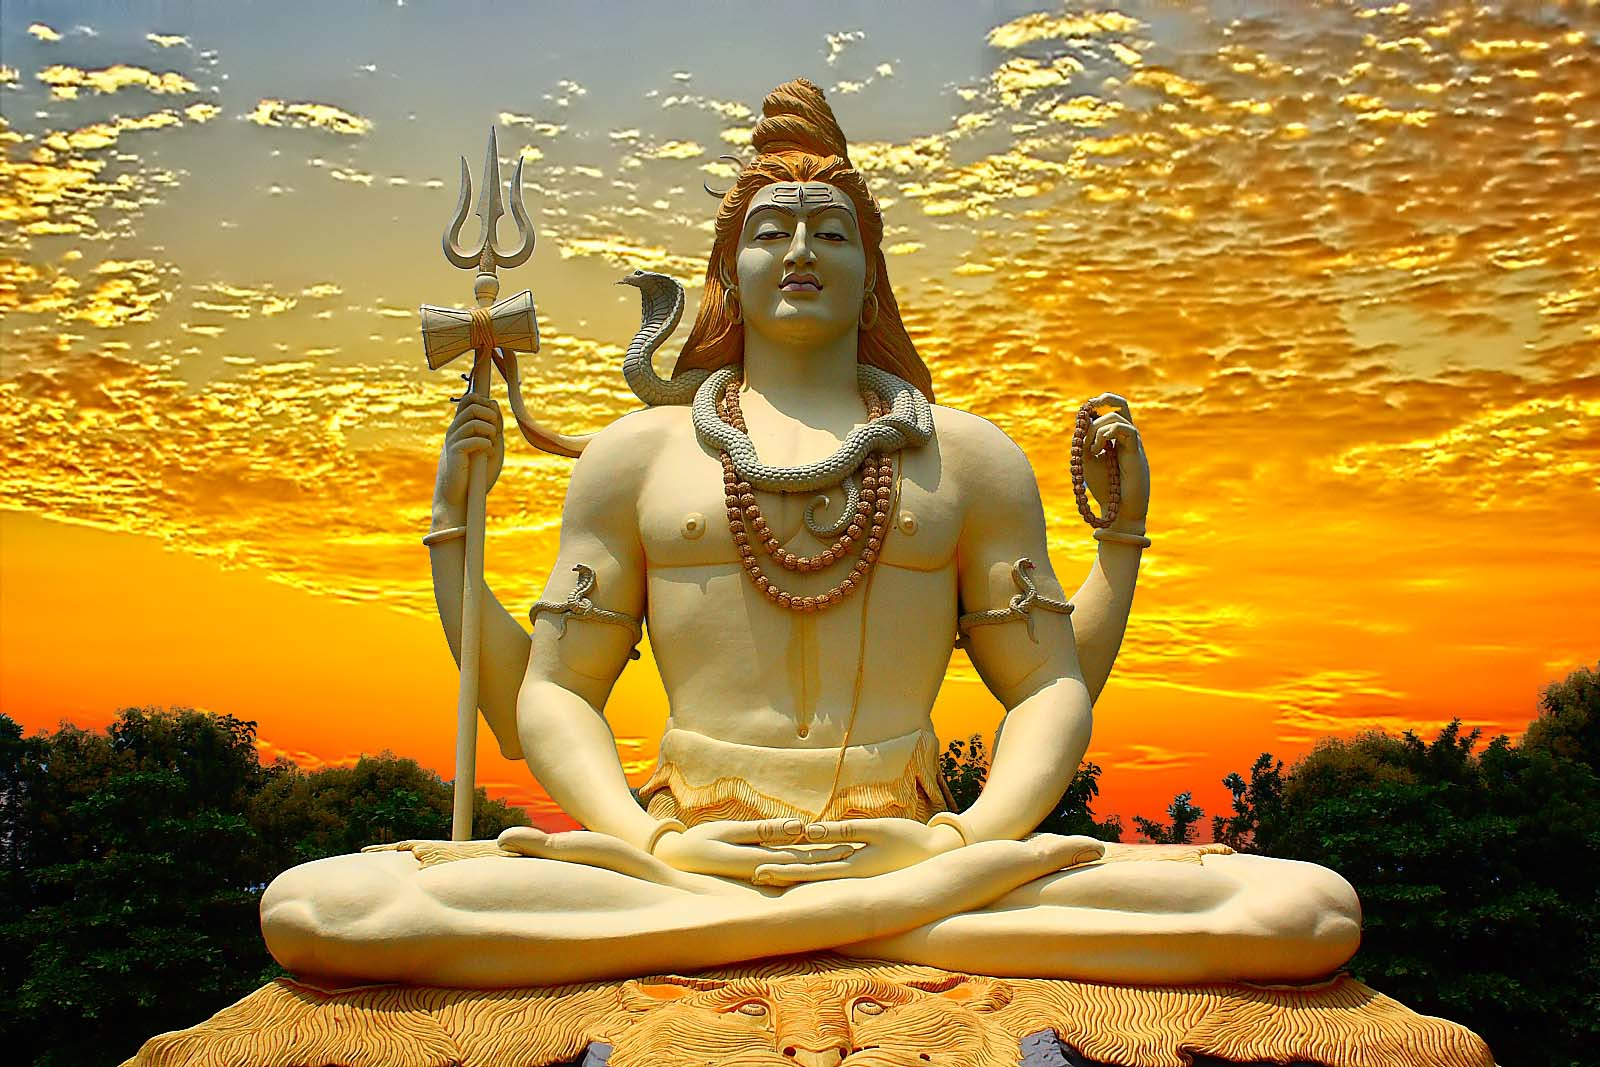 Shiva Wallpaper: Lord Shiva Wallpapers Hd Free Download For Desktop